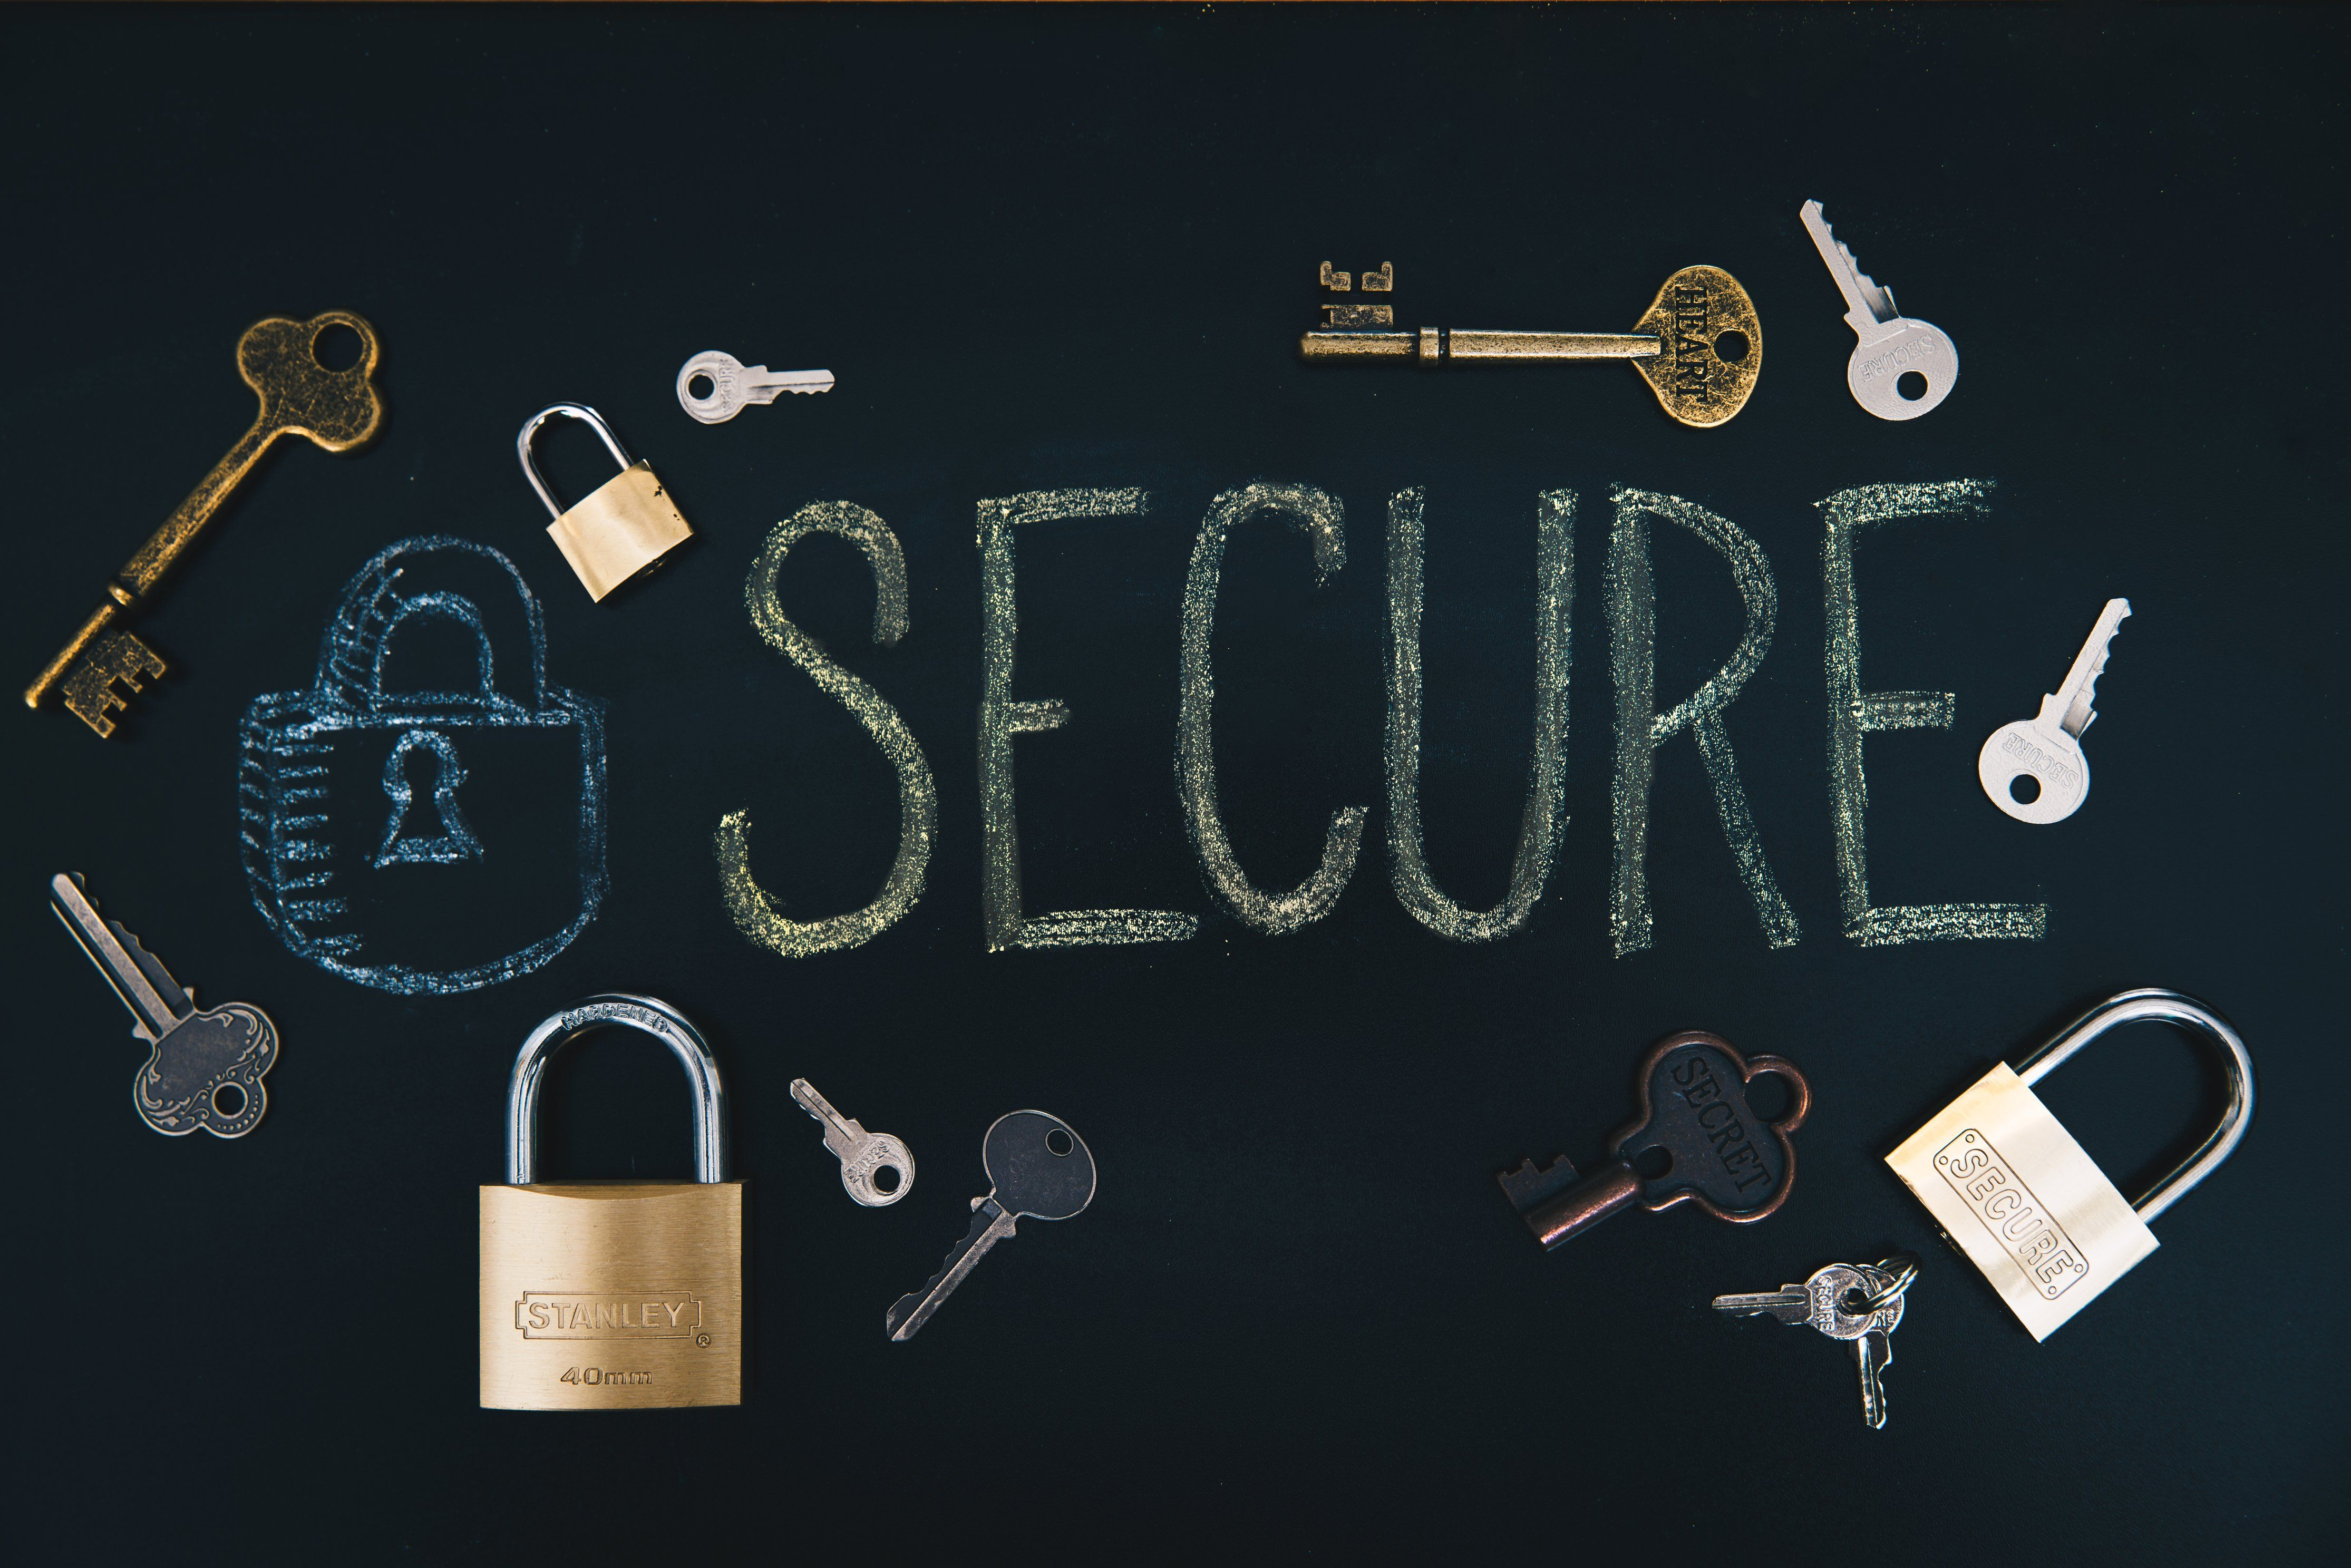 /how-to-revolutionize-data-security-through-homomorphic-encryption-mj1y3ud3 feature image